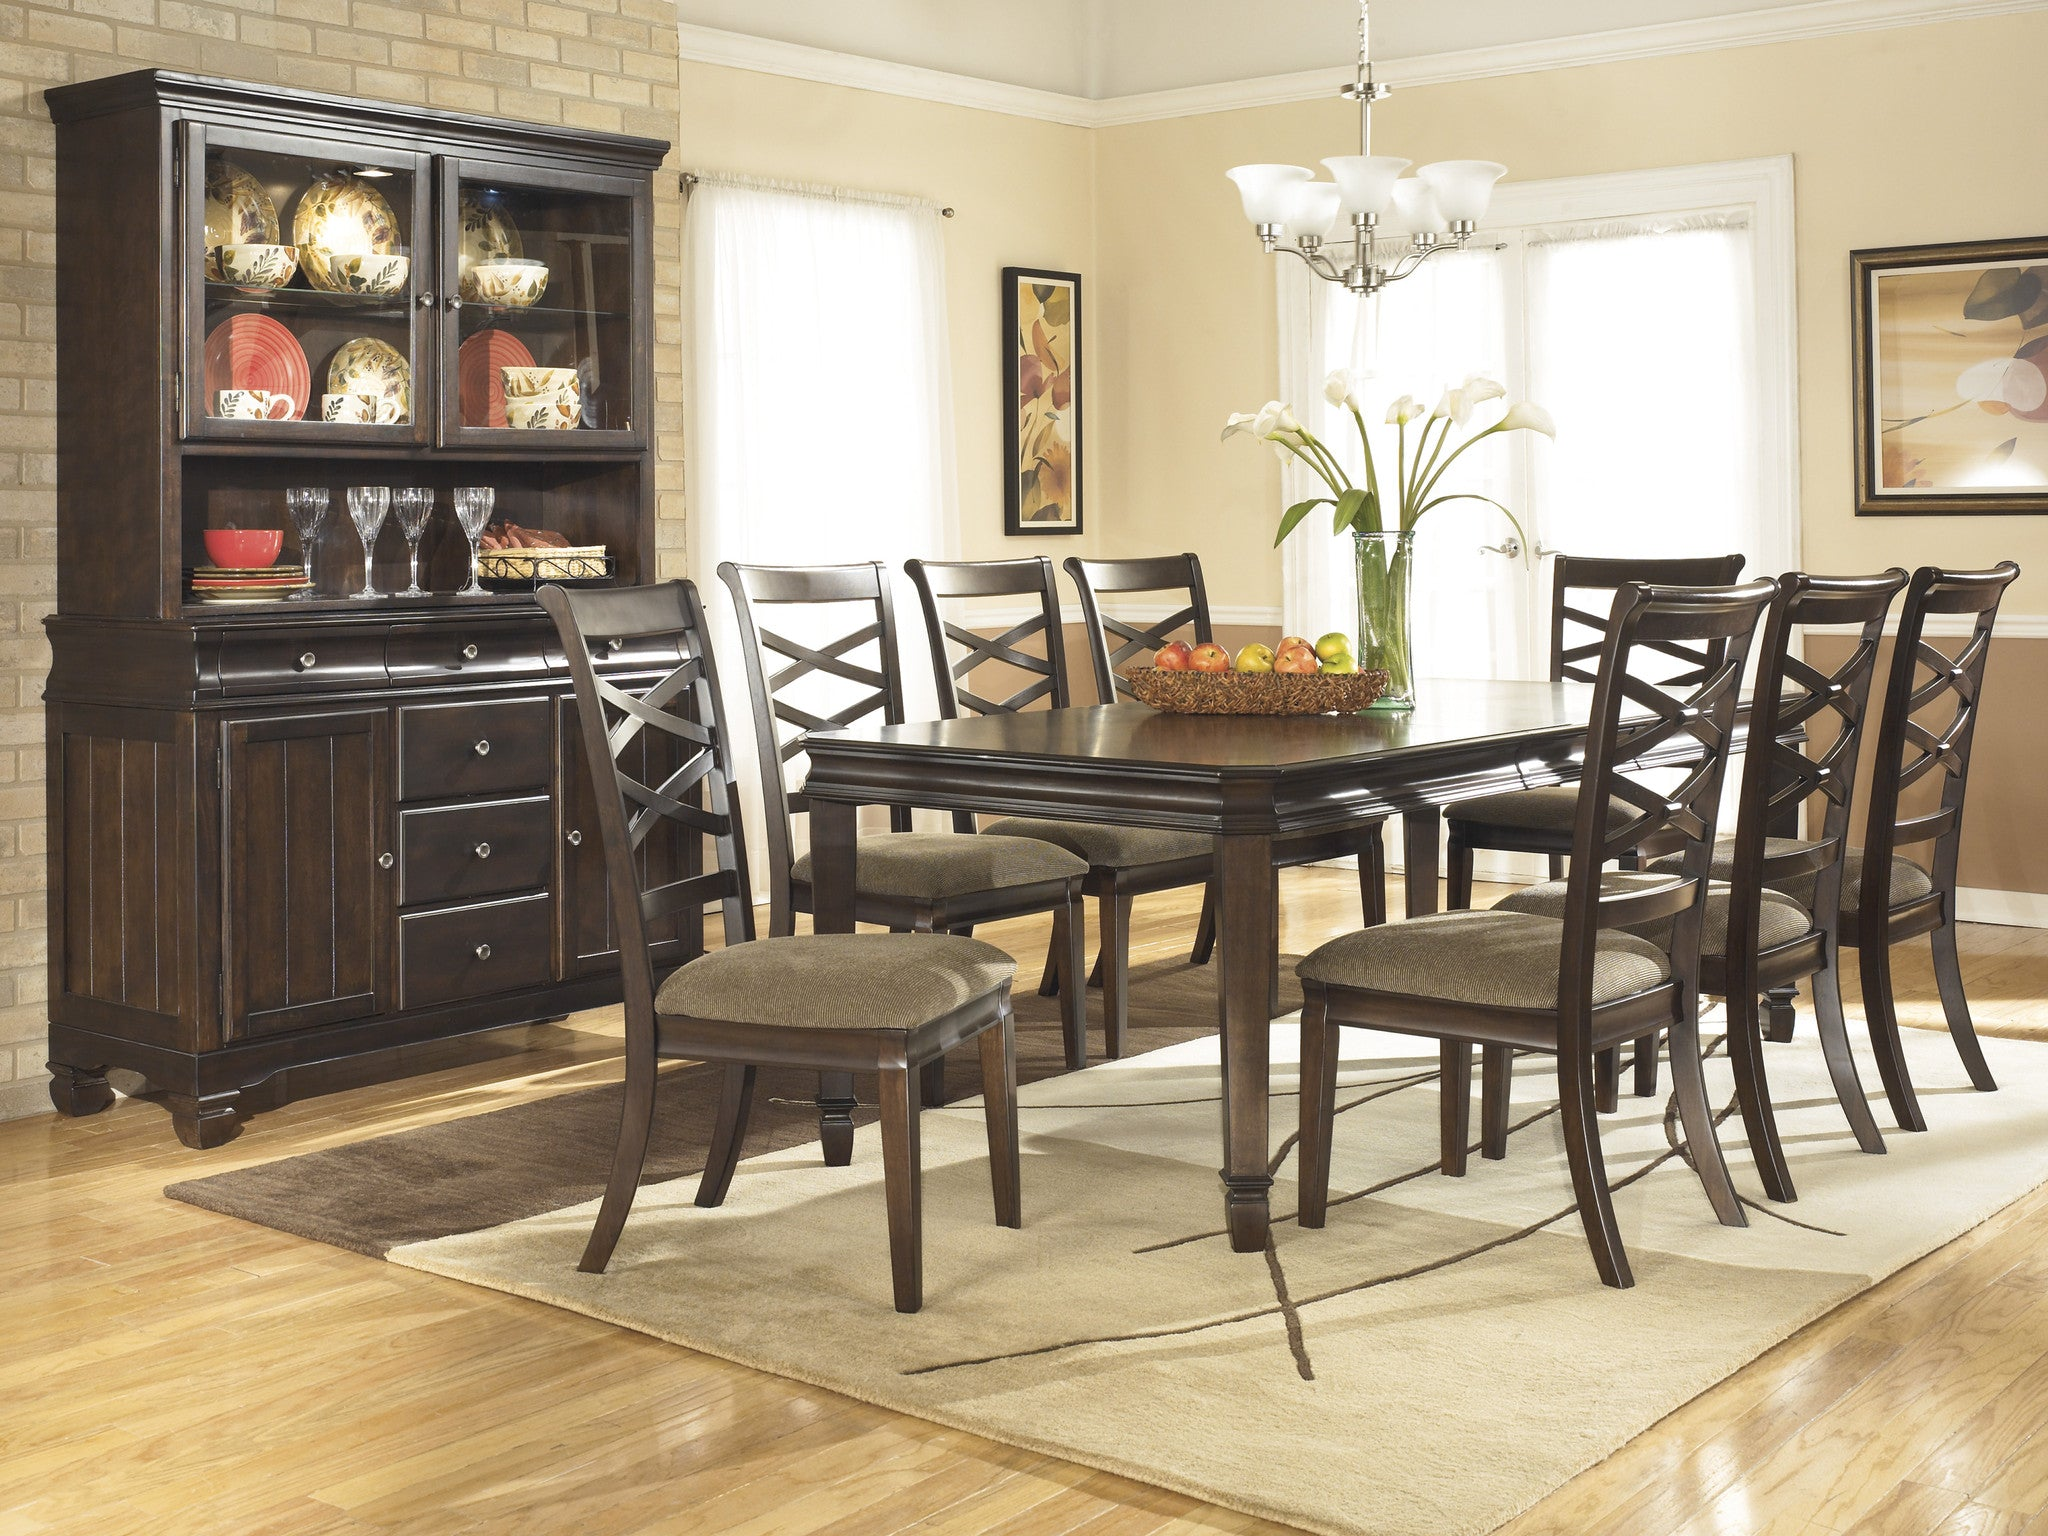 Ashley Furniture Hayley 9 Piece Dining Set with Server JACKS